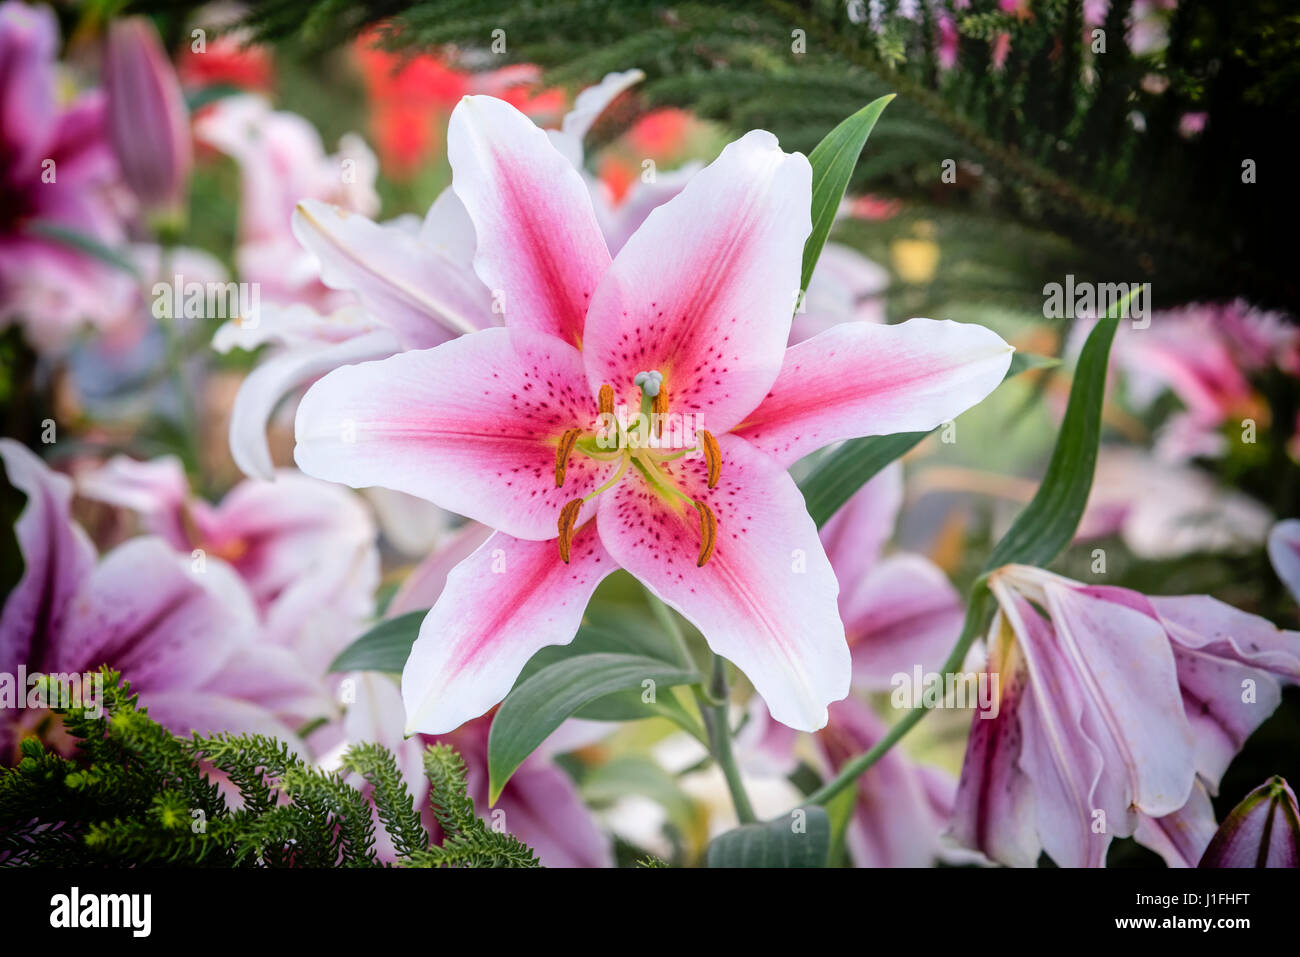 Beautiful pink lily in garden zephyranthes flower common names for beautiful pink lily in garden zephyranthes flower common names for species in this genus include fairy lily rainflower zephyr lily magic lily at izmirmasajfo